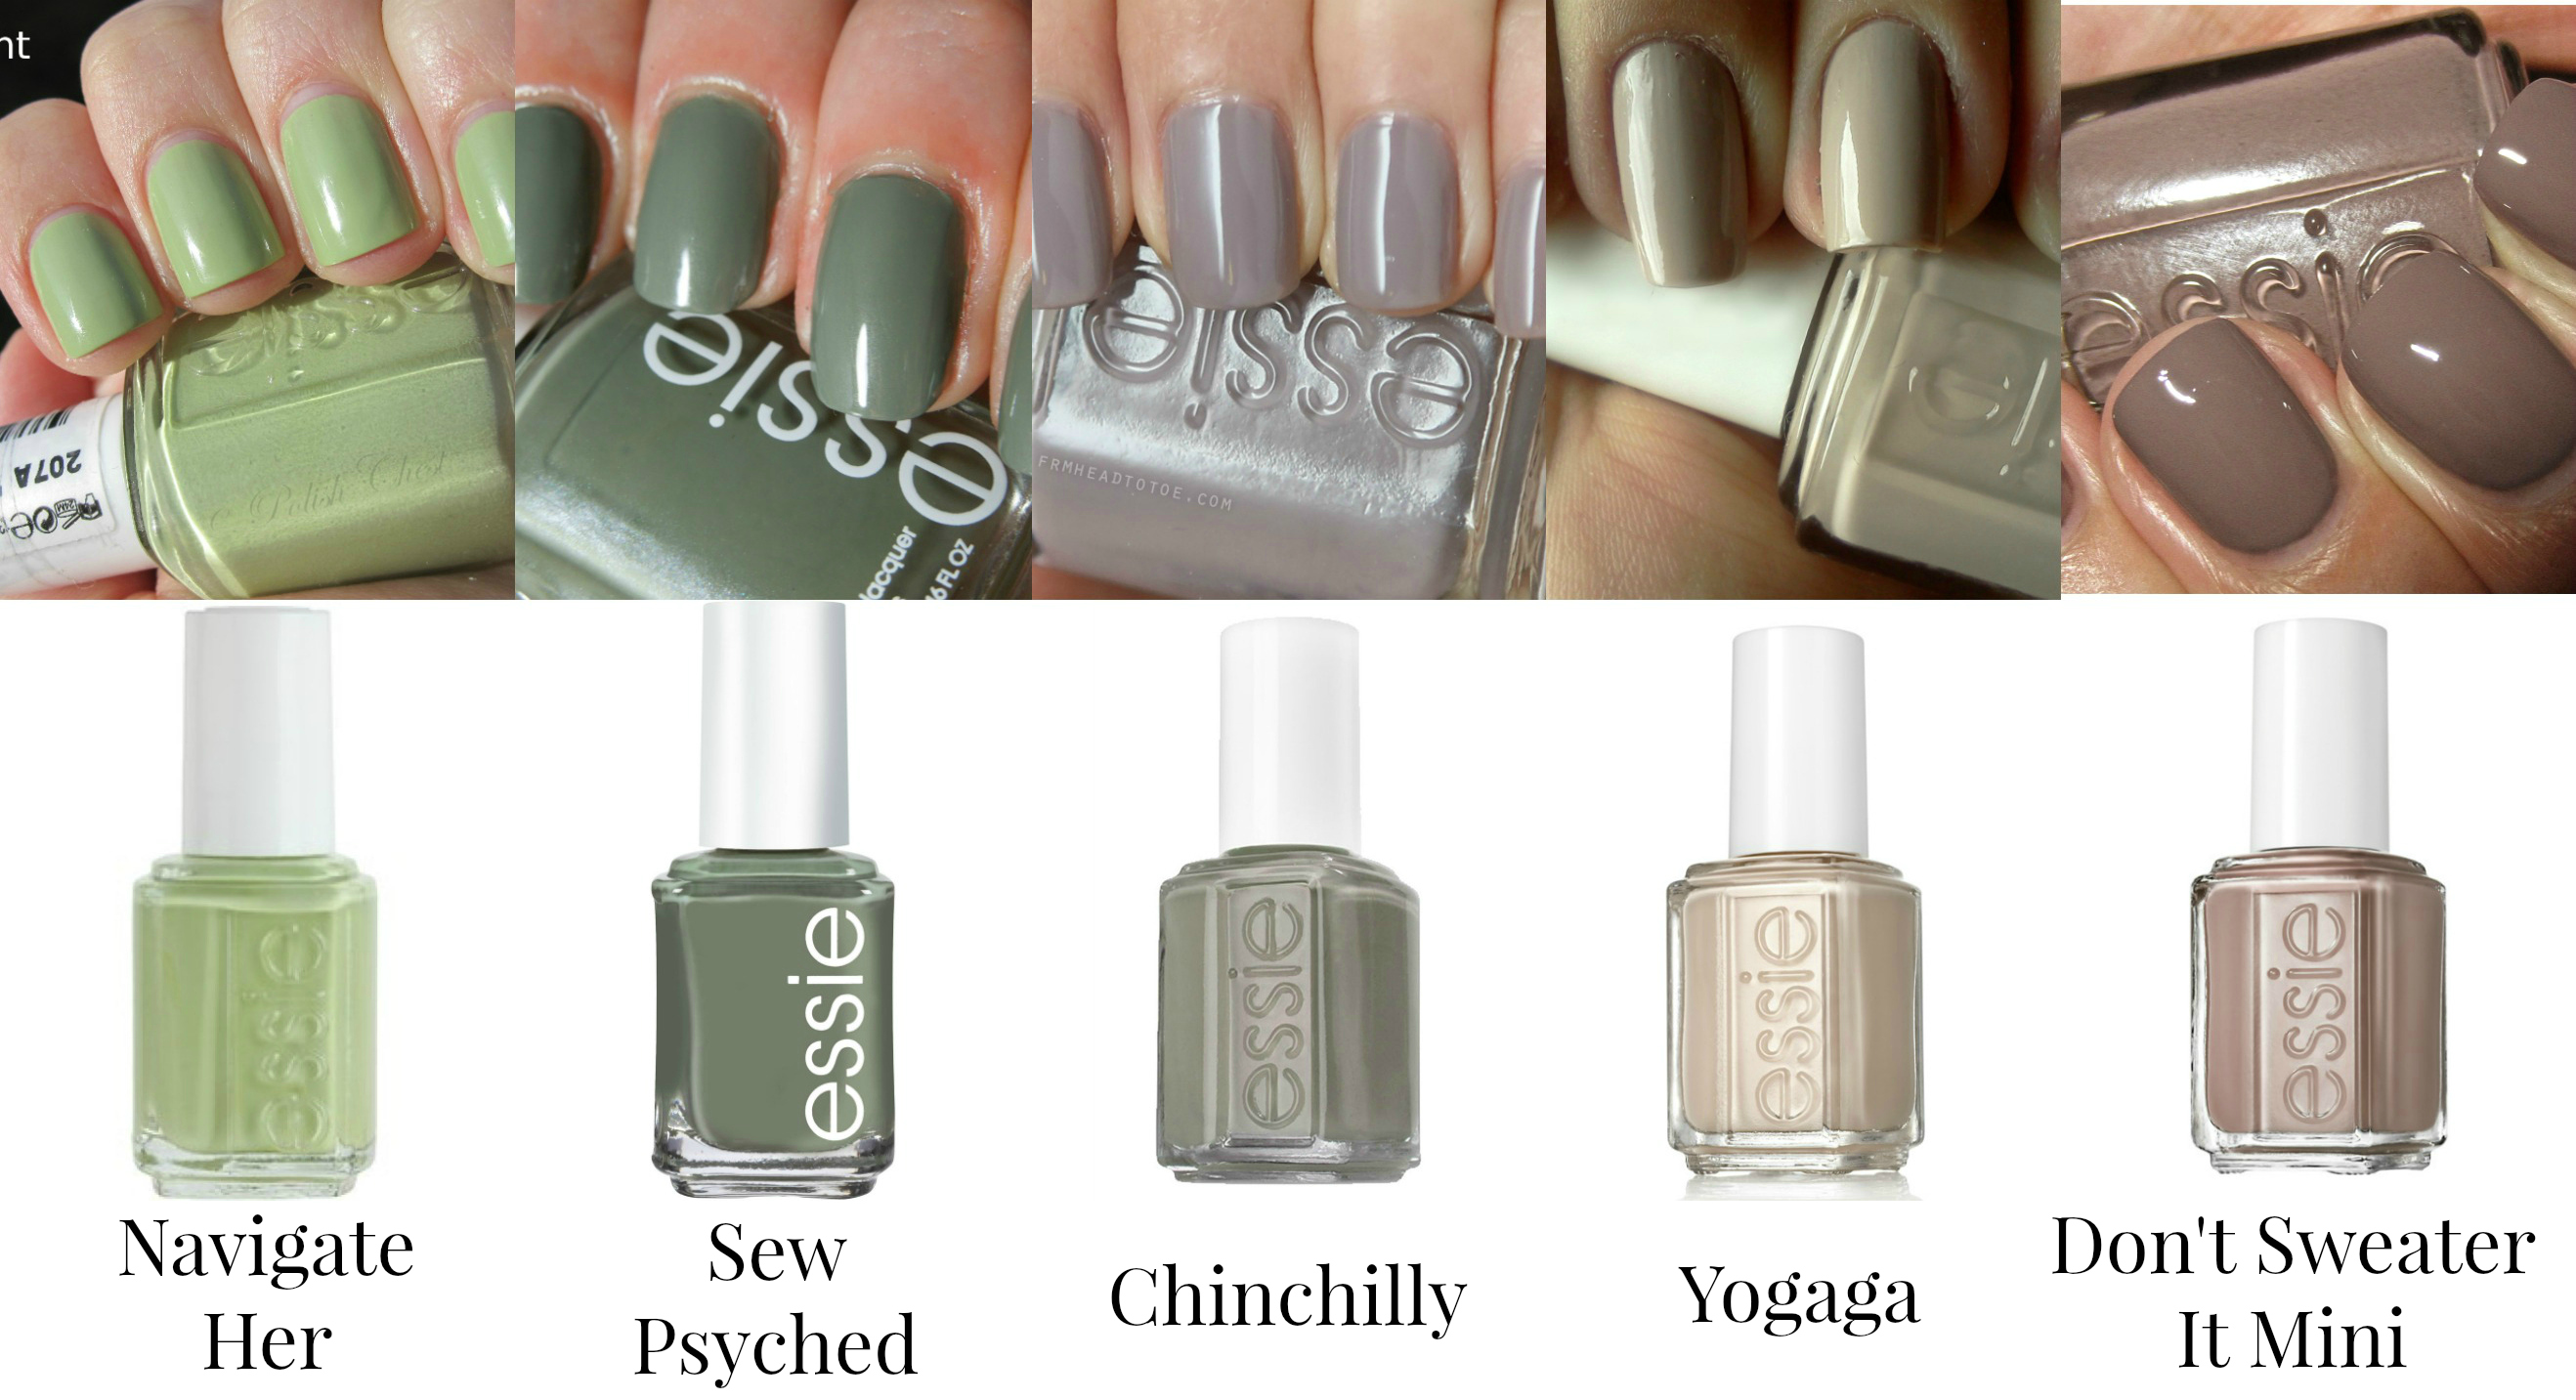 Essie Nail Polishes - Light Greens and Neutrals - Navigate Her, Sew ...